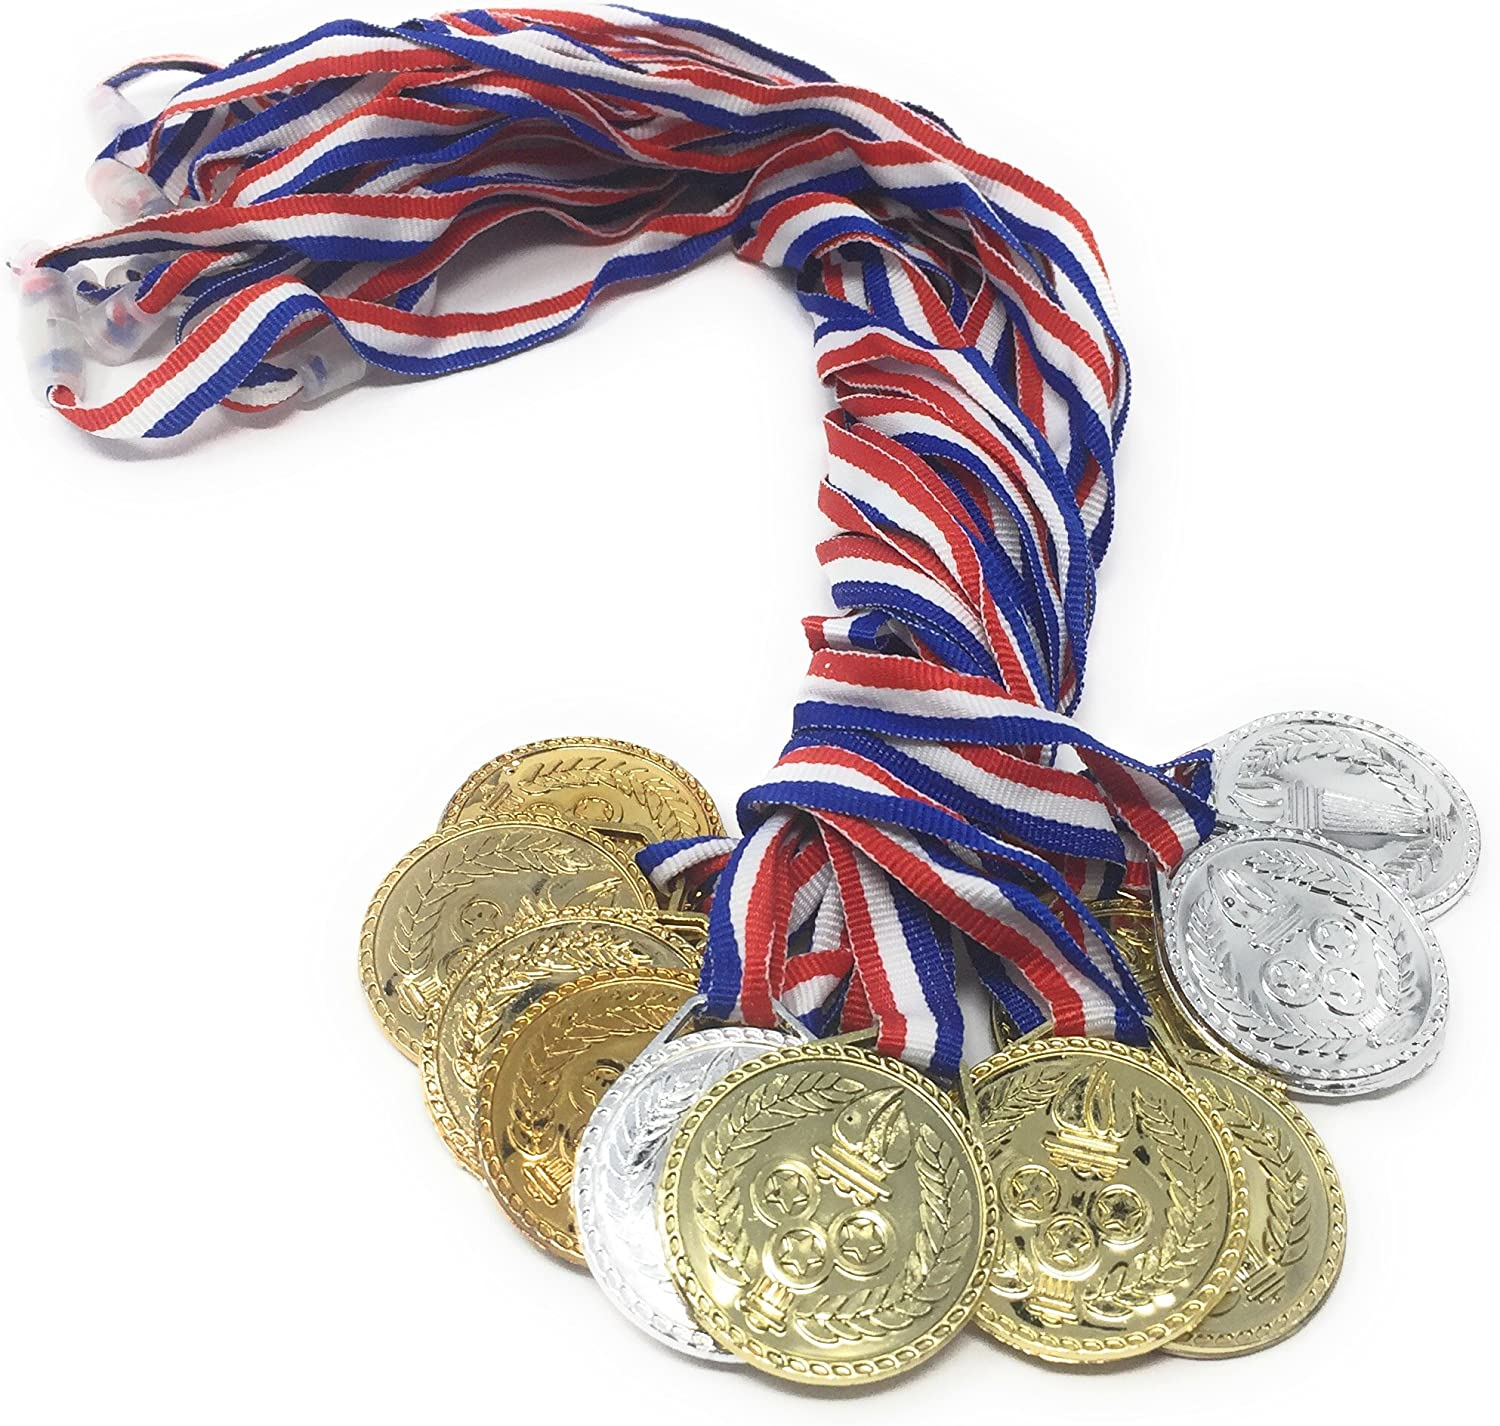 Torch Award Medals (2 Dozen) - Bulk - Gold, Silver, Bronze Medals - Olympic Style Award Medals - First Second Third Winner -Olympic Medals-Great for Party Favor Decorations and Awards